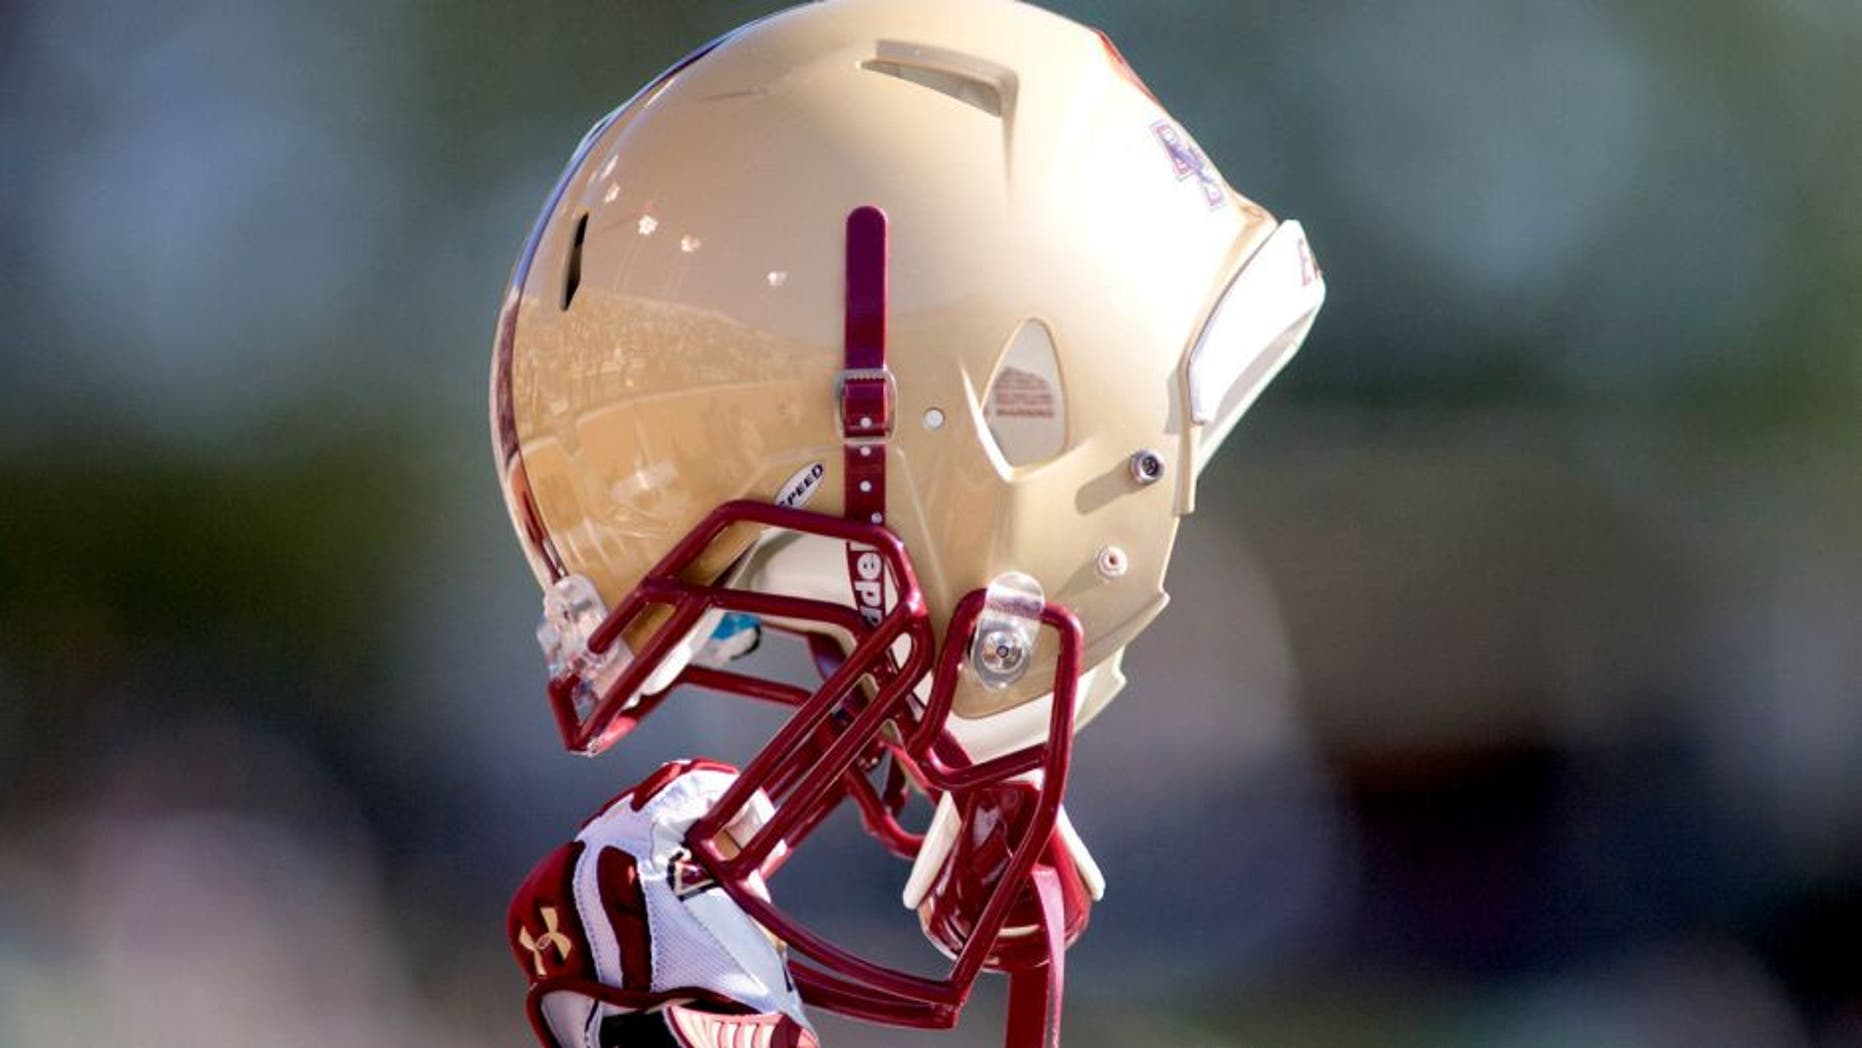 Nov 3, 2012; Winston Salem, NC, USA; A Boston College Eagles player raises his helmet during kickoff in the first quarter against the Wake Forest Demon Deacons at BB&T field. Mandatory Credit: Jeremy Brevard-USA TODAY Sports